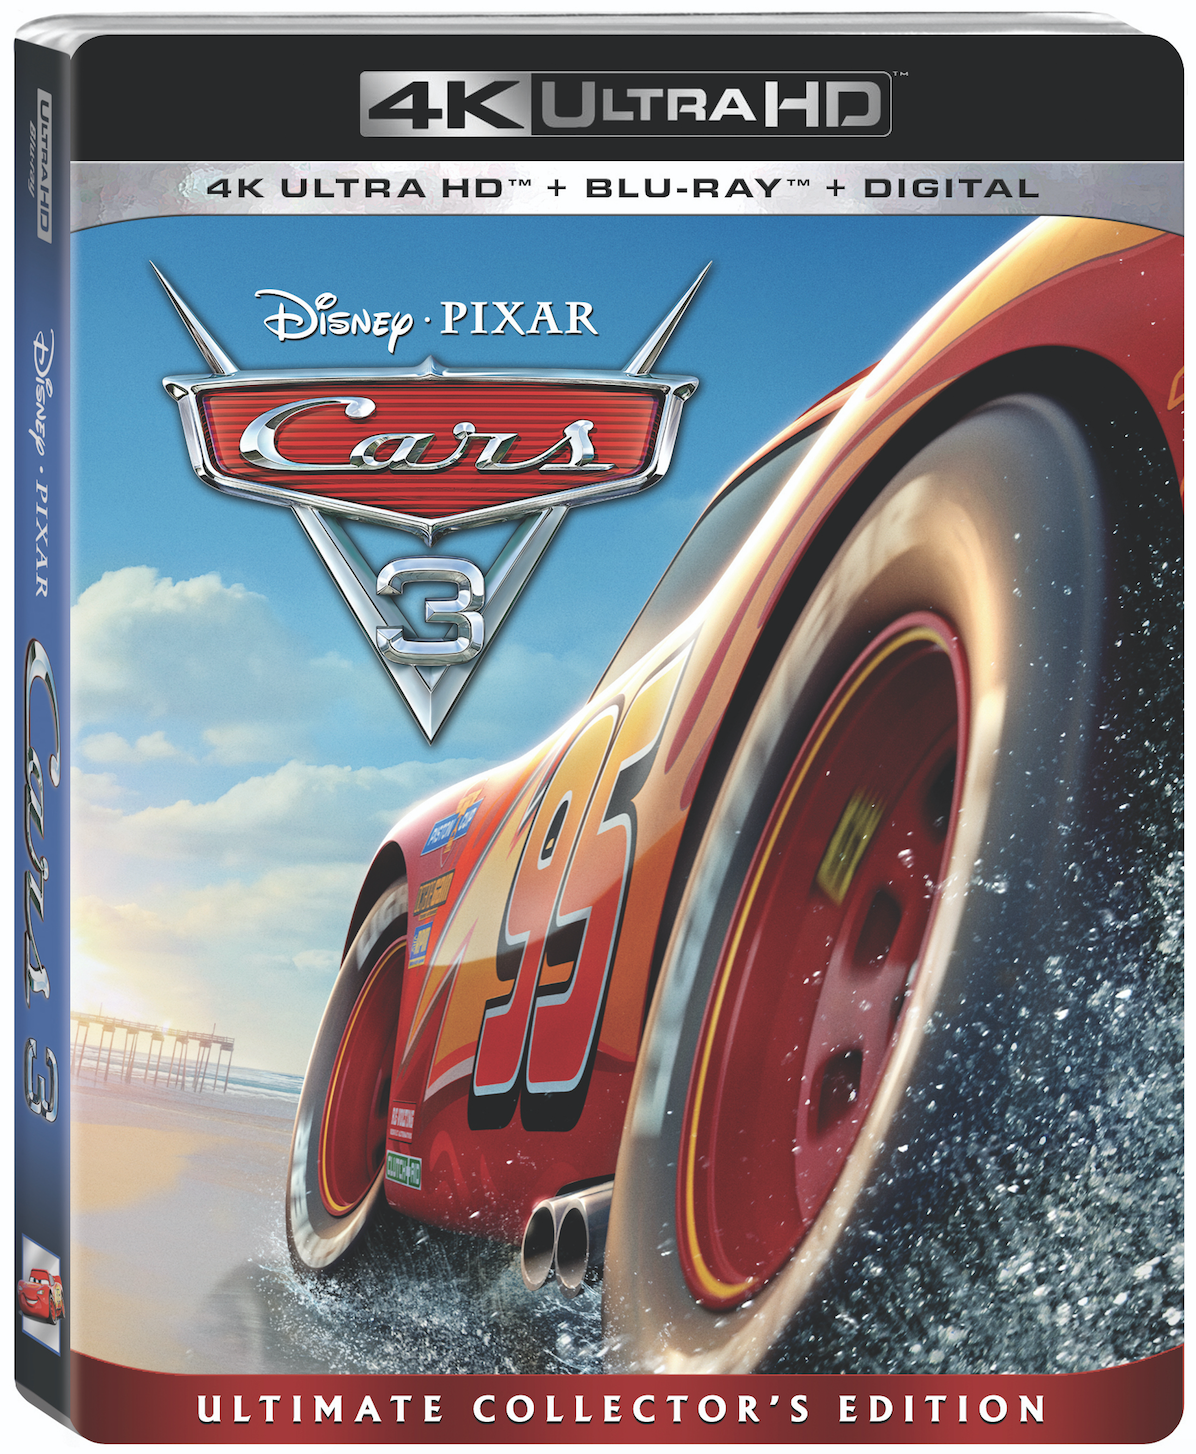 cars 3 4k ultra HD release